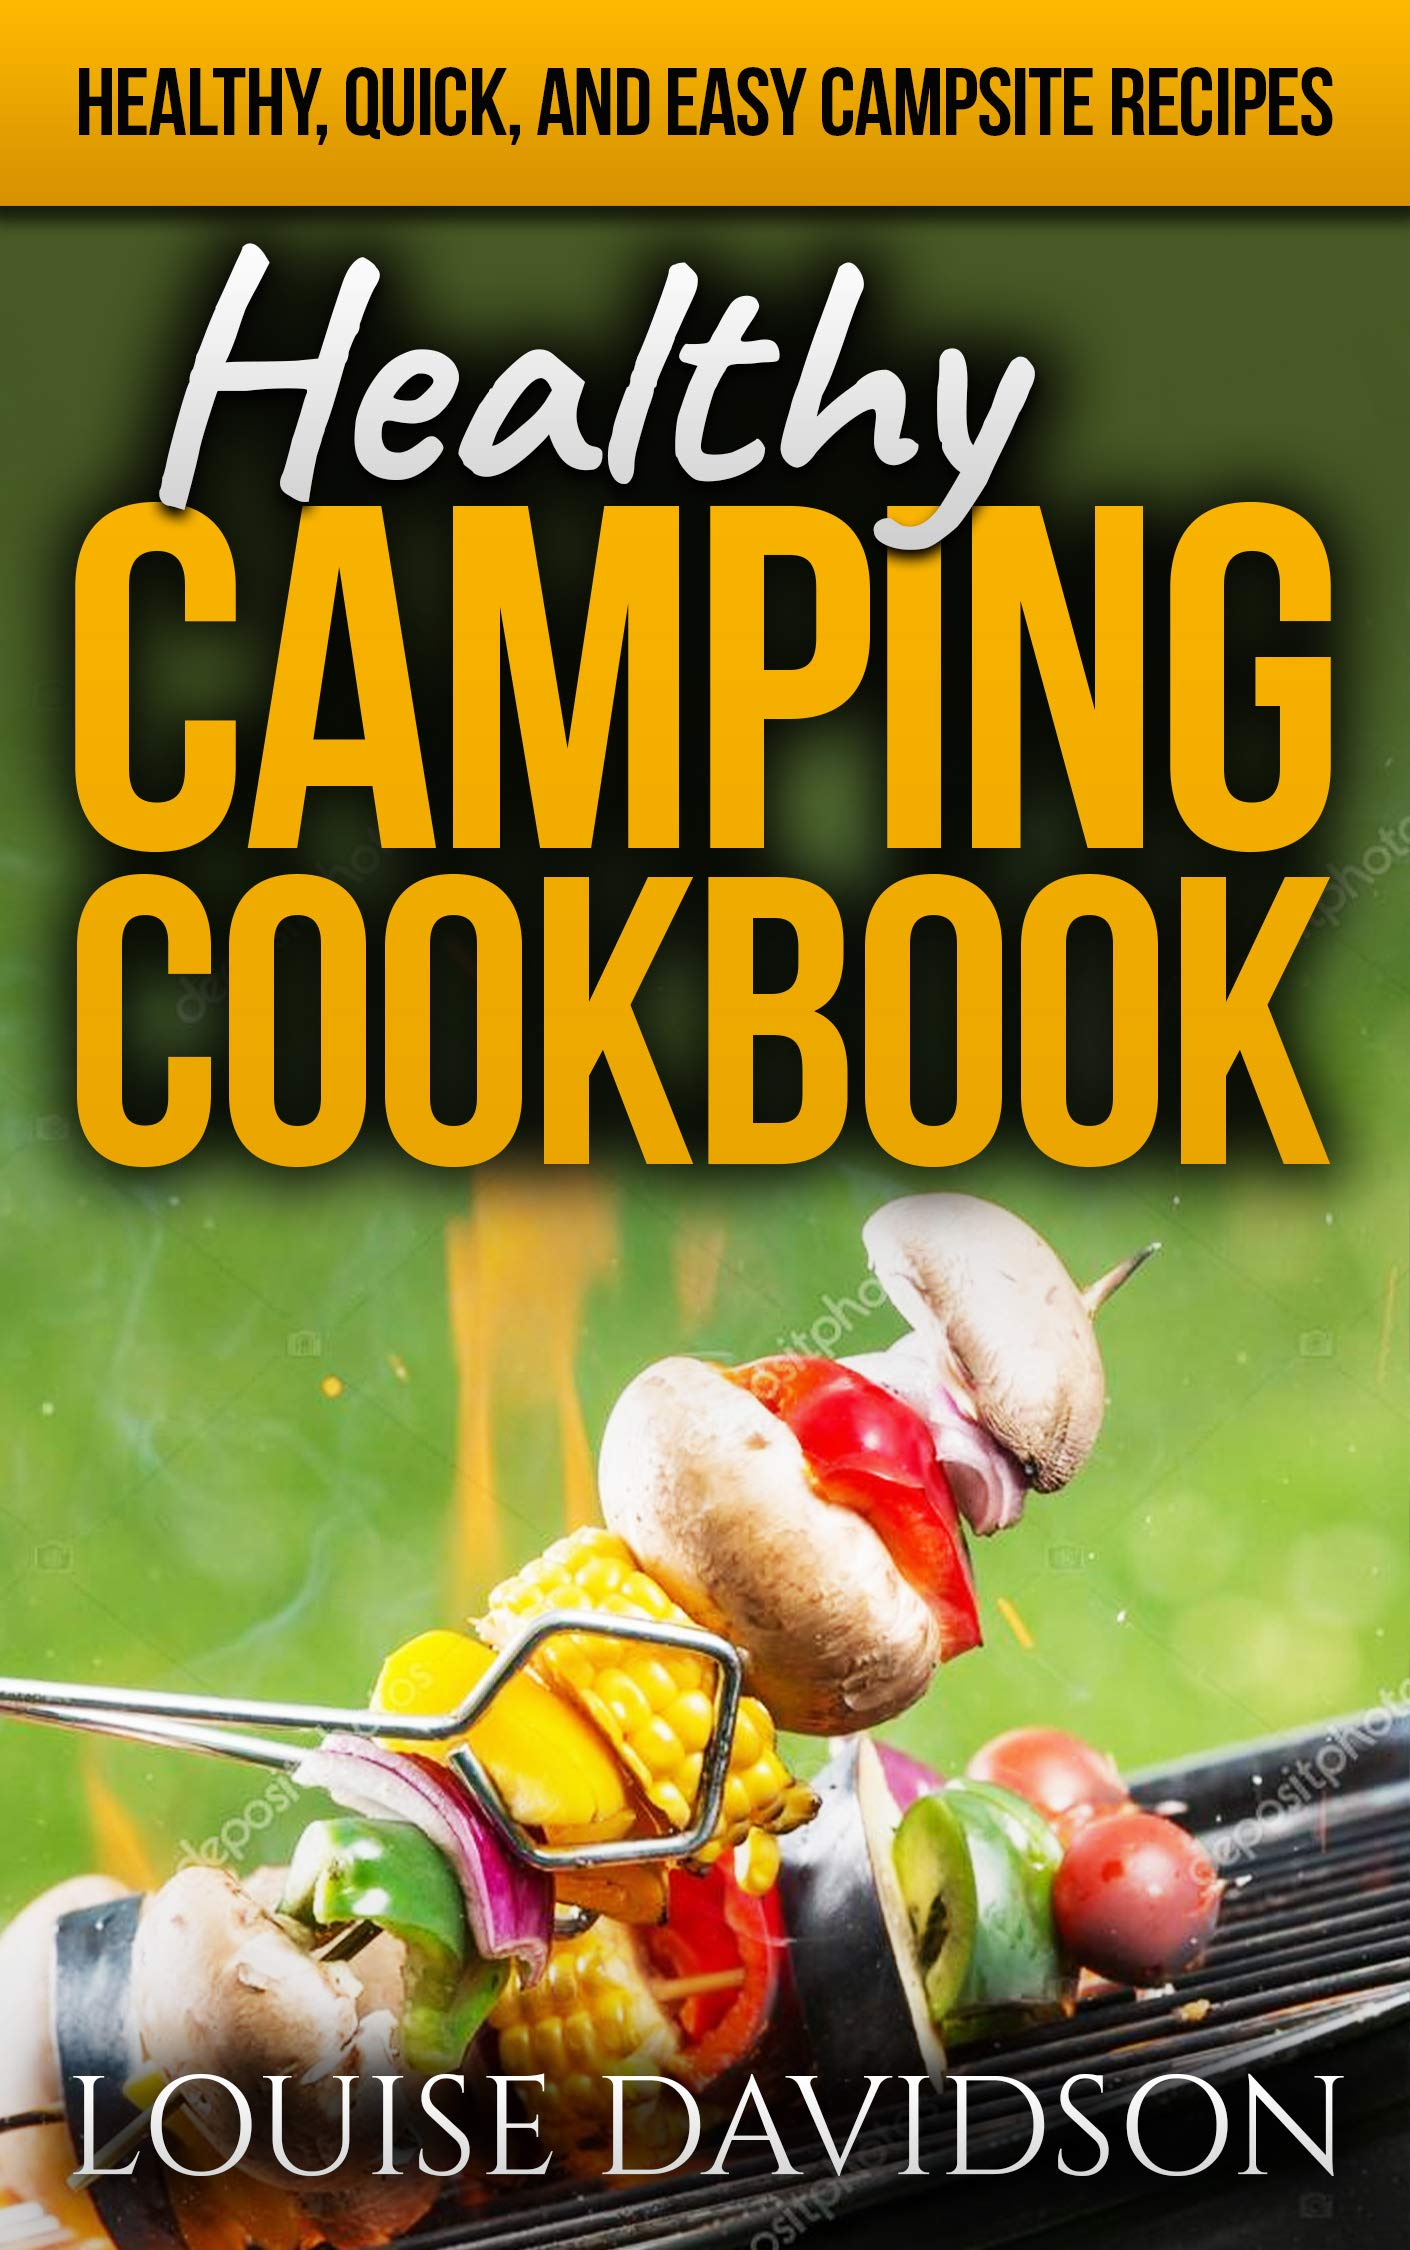 Image OfHealthy Camping Cookbook: Healthy, Quick, And Easy Campsite Recipes (Camp Cooking Book 13) (English Edition)